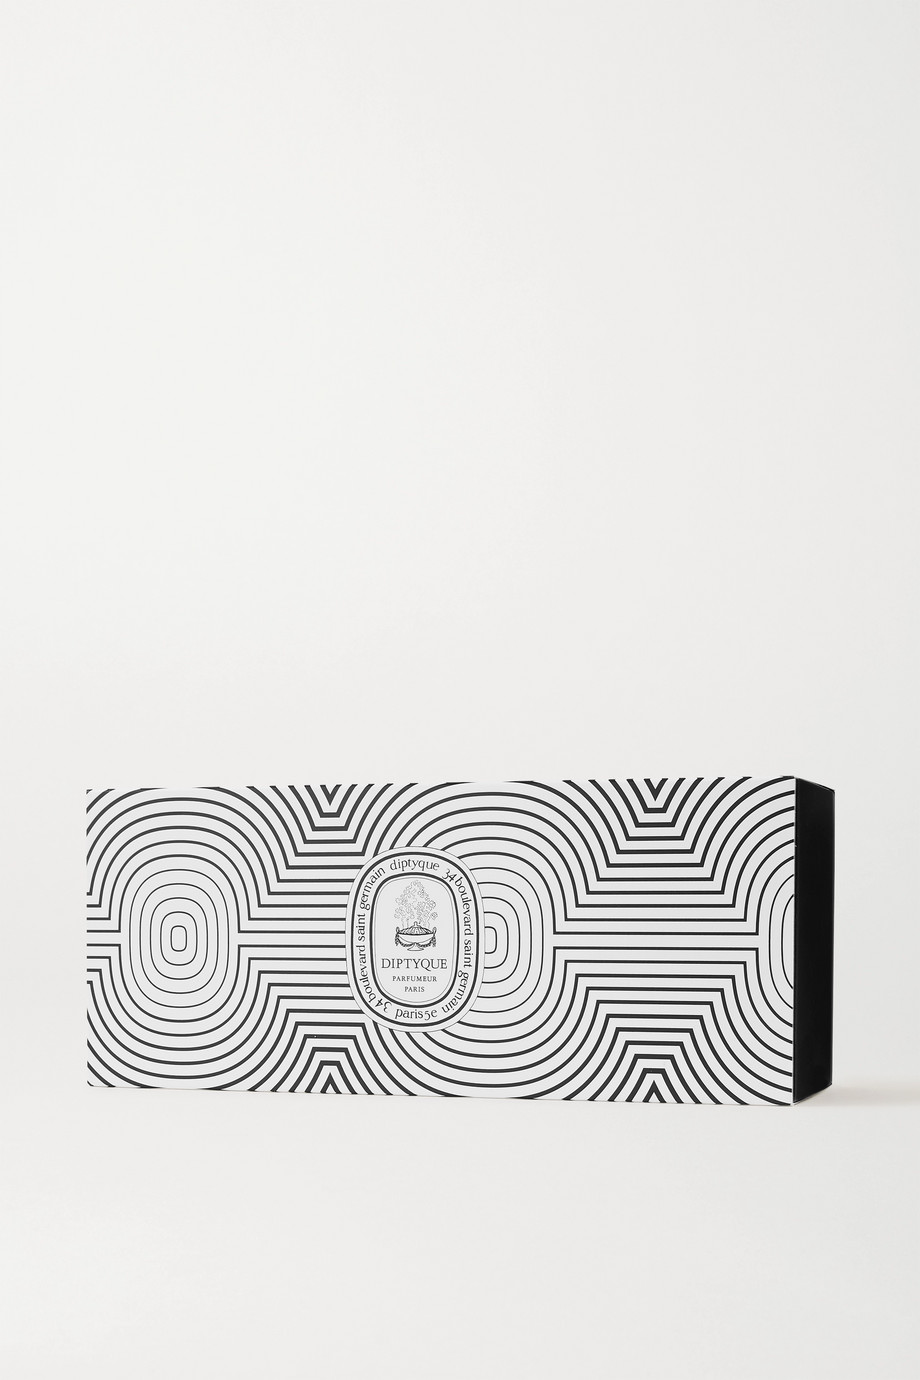 Diptyque Graphic Collection set of three scented candles, 3 x 70g